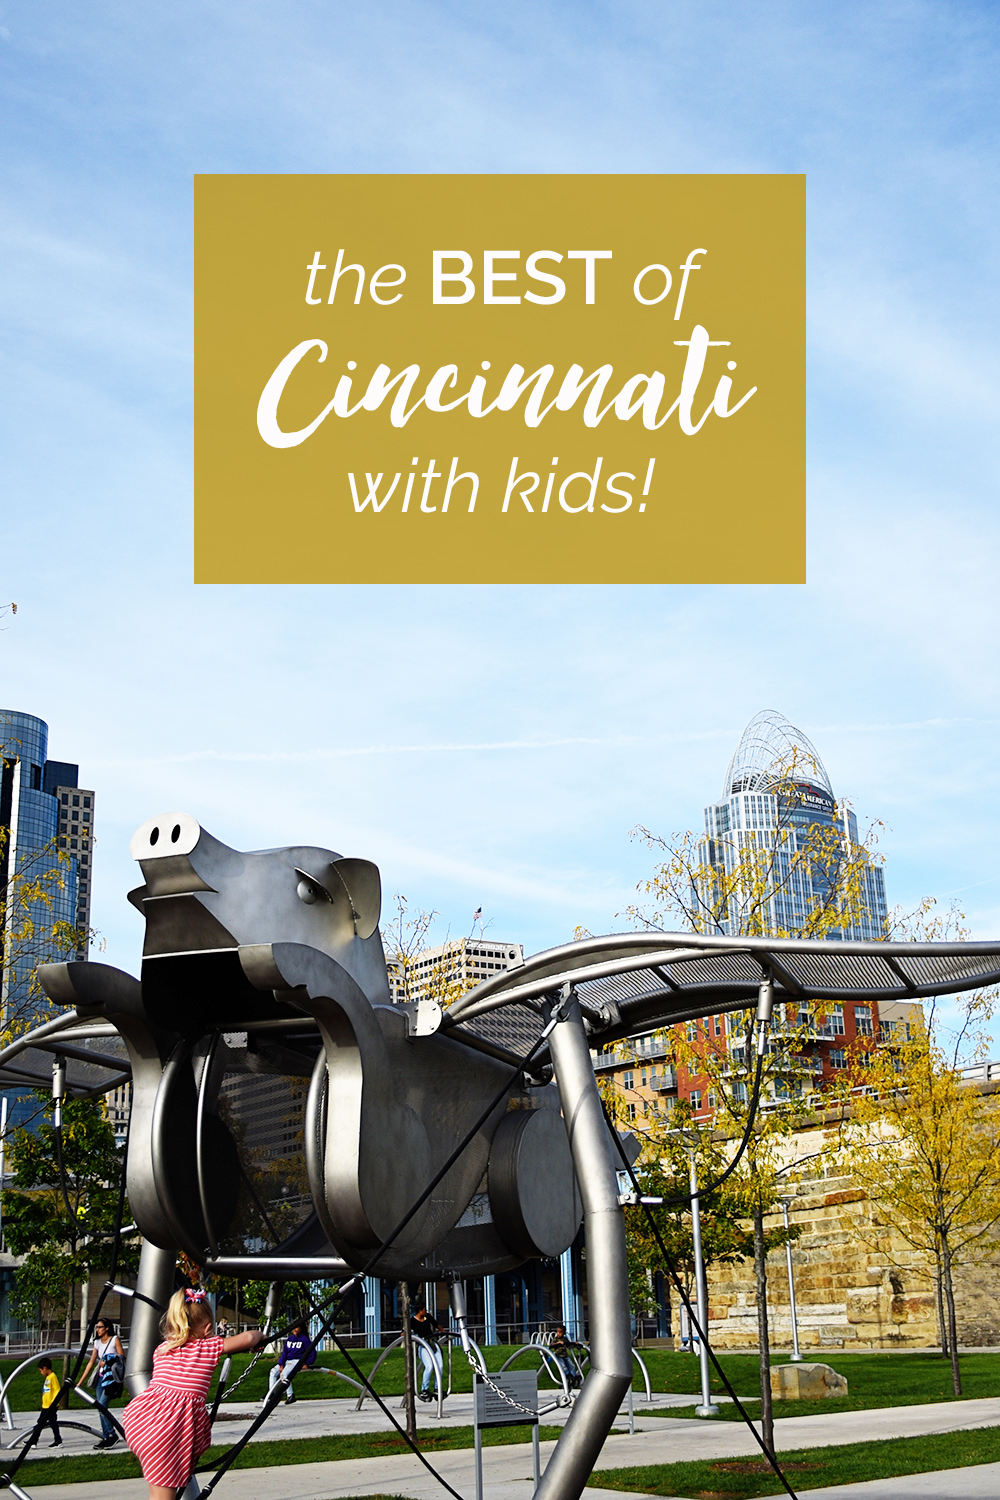 The best of Cincinnati (with kids!): There are so many family friendly places to visit in Cincinnati, Ohio. These are some of our favorites.